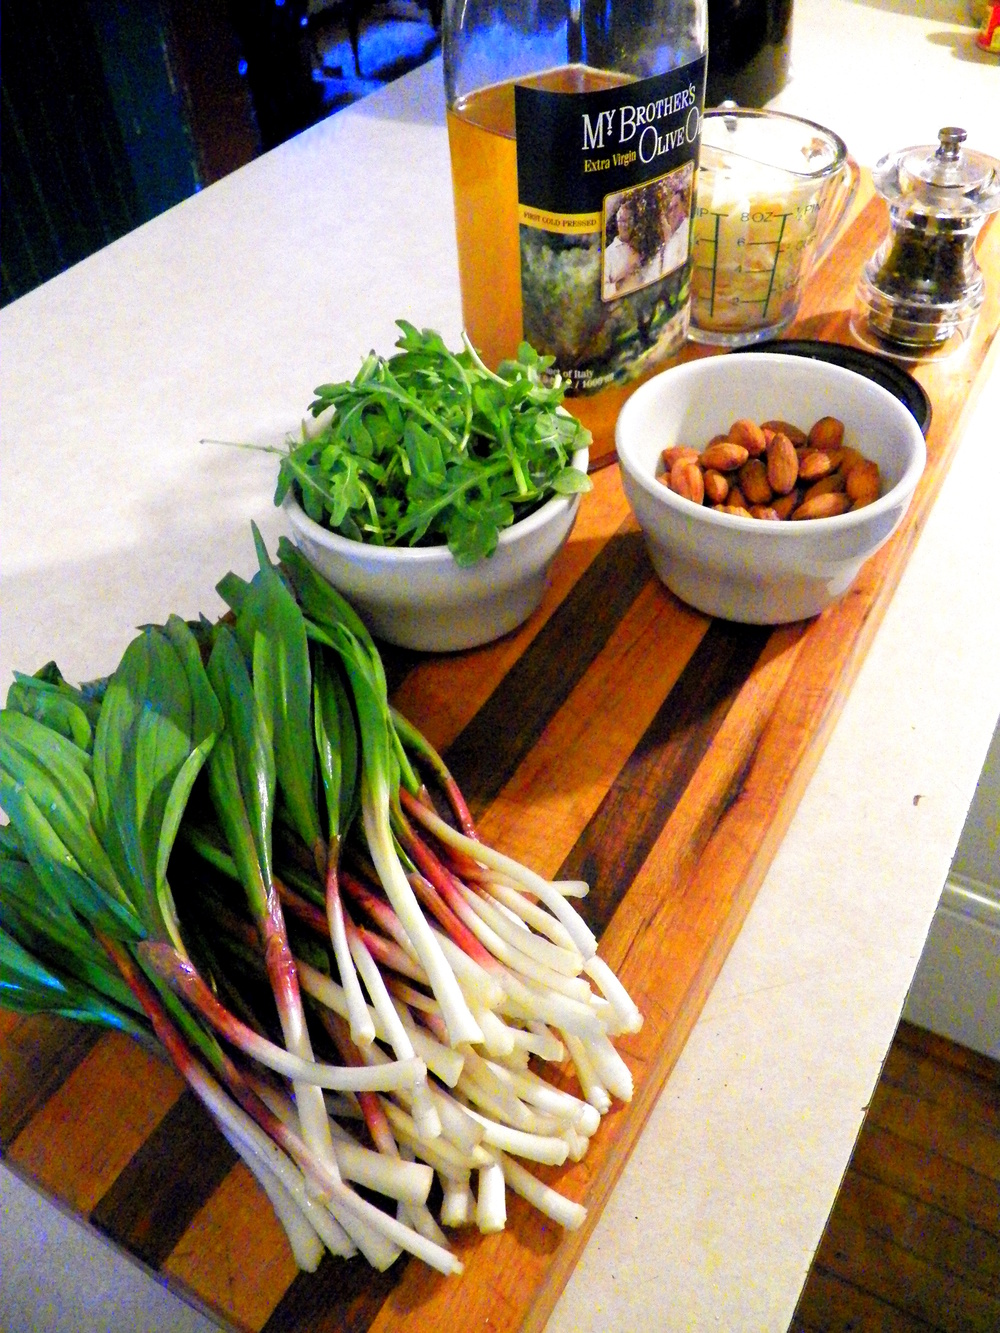 Ramp Pesto Ingredients